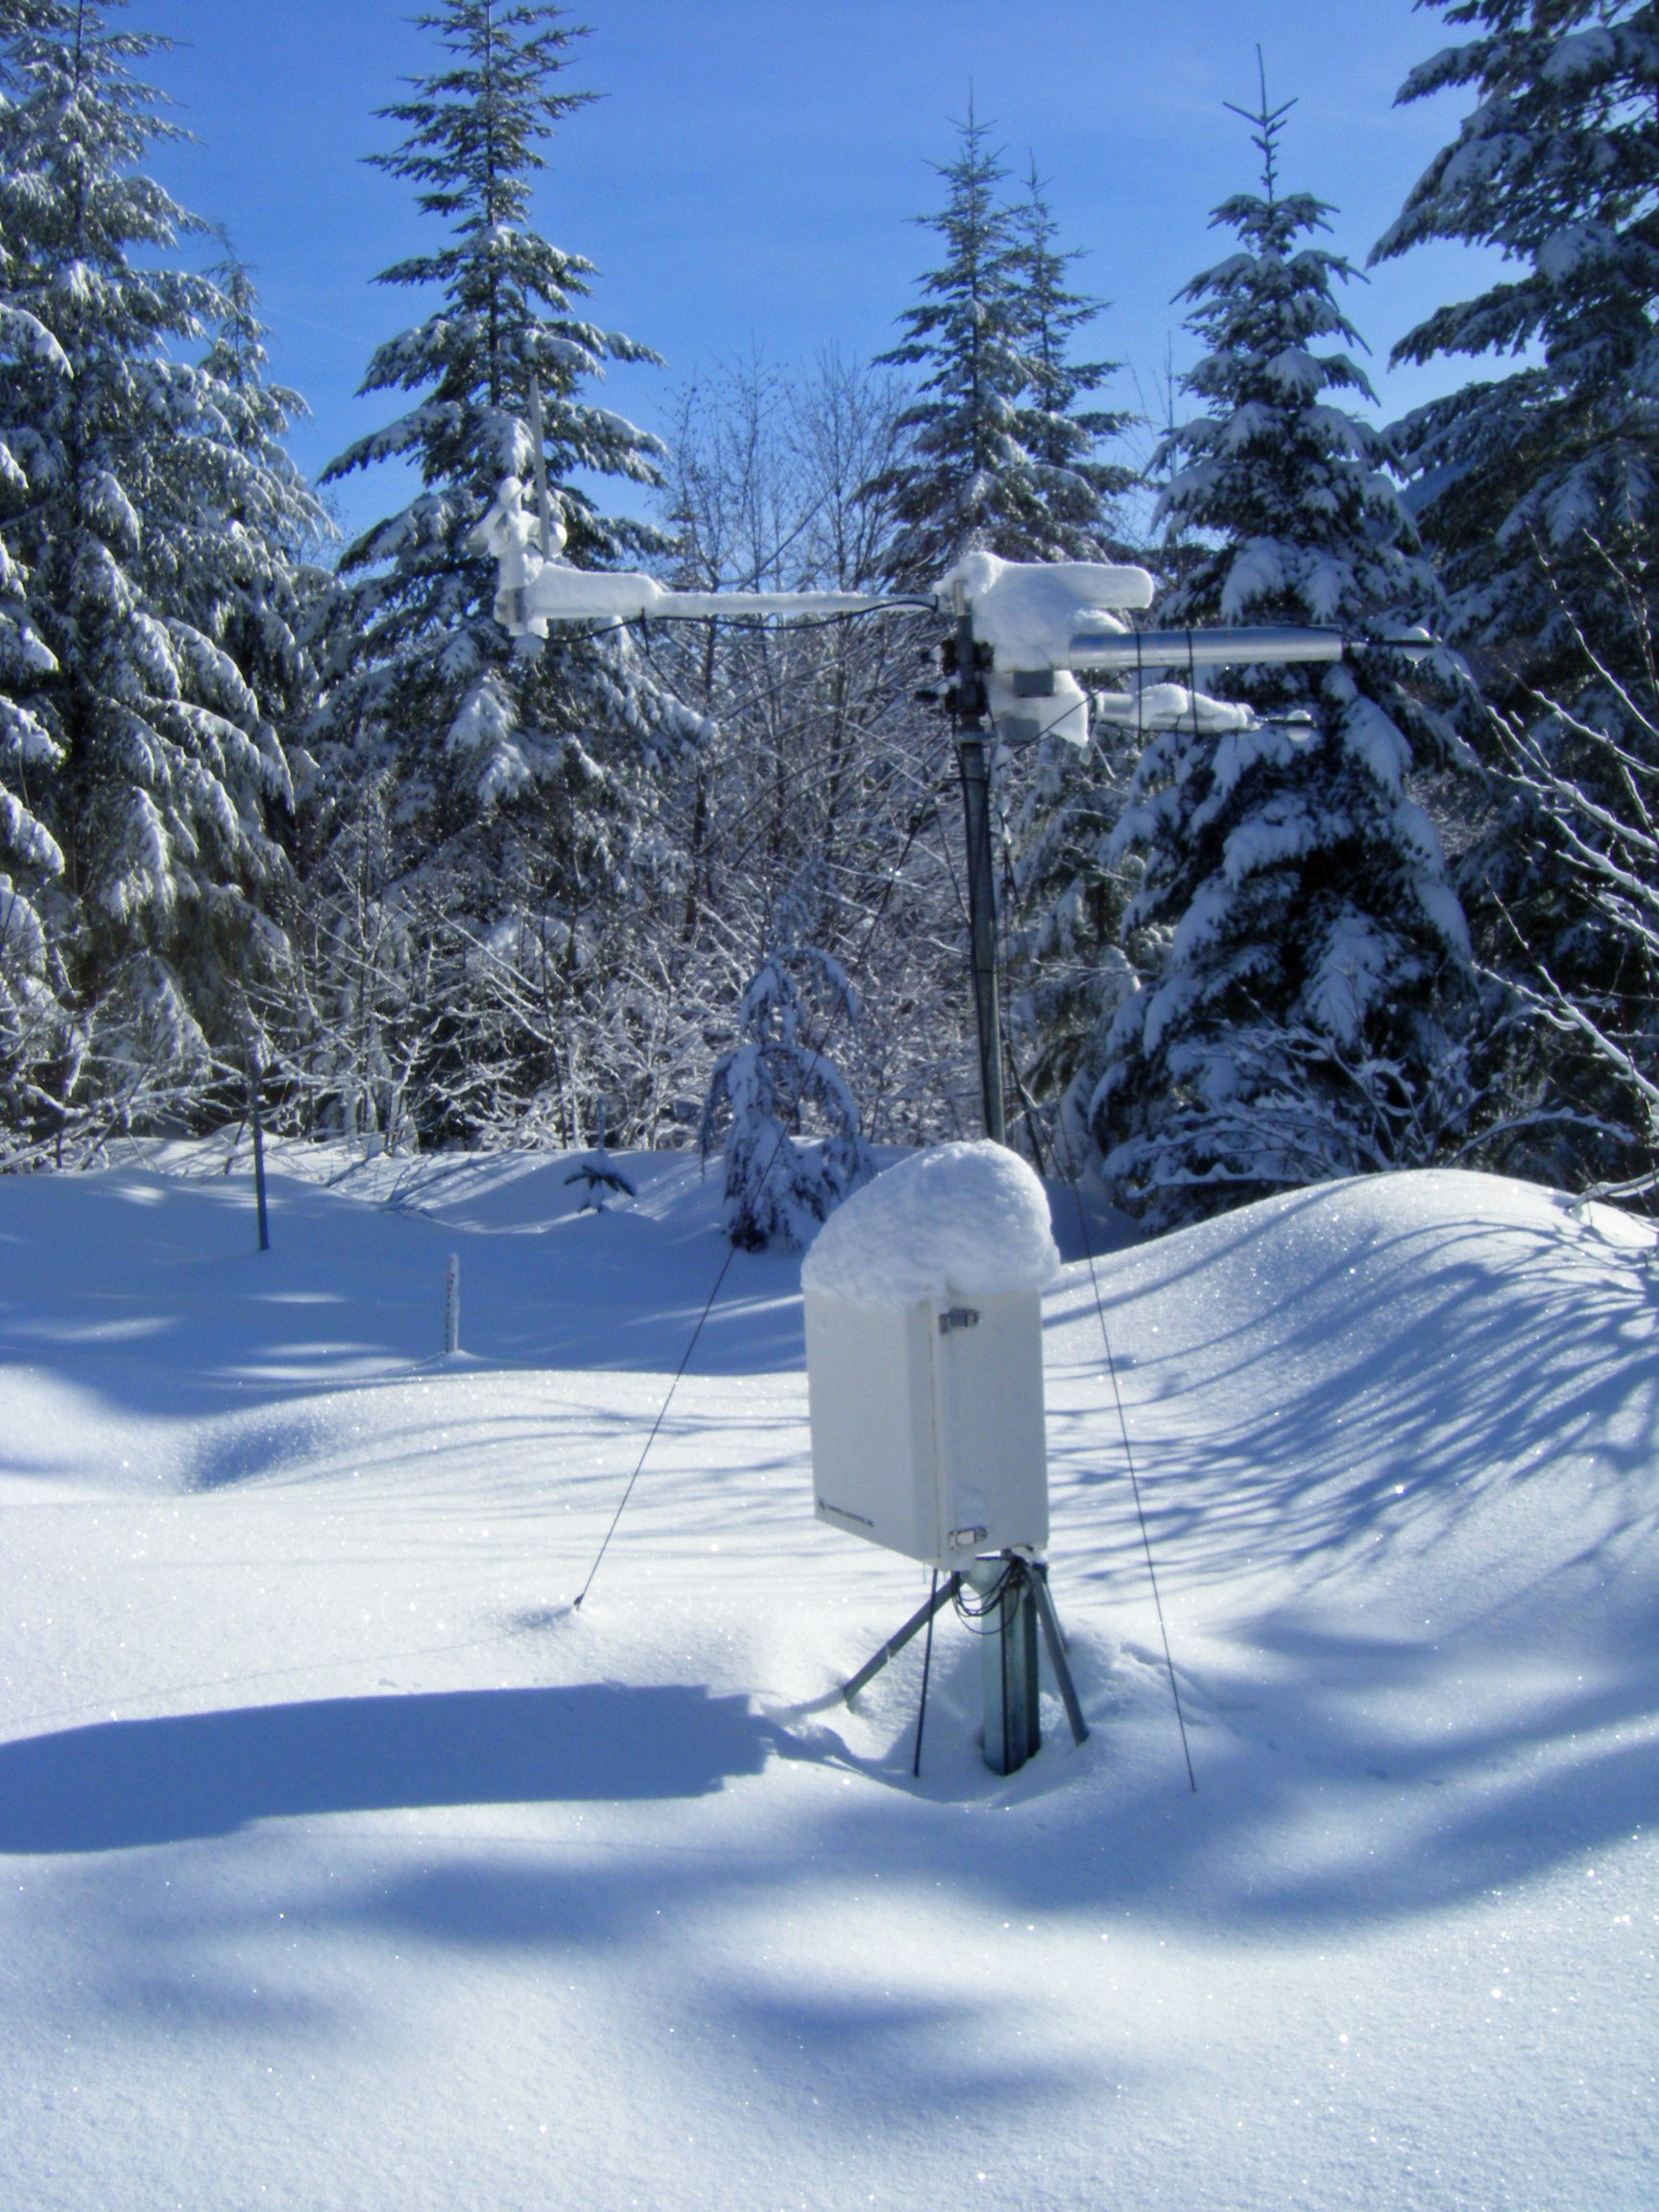 Snow melts faster under trees than in open areas in mild ...